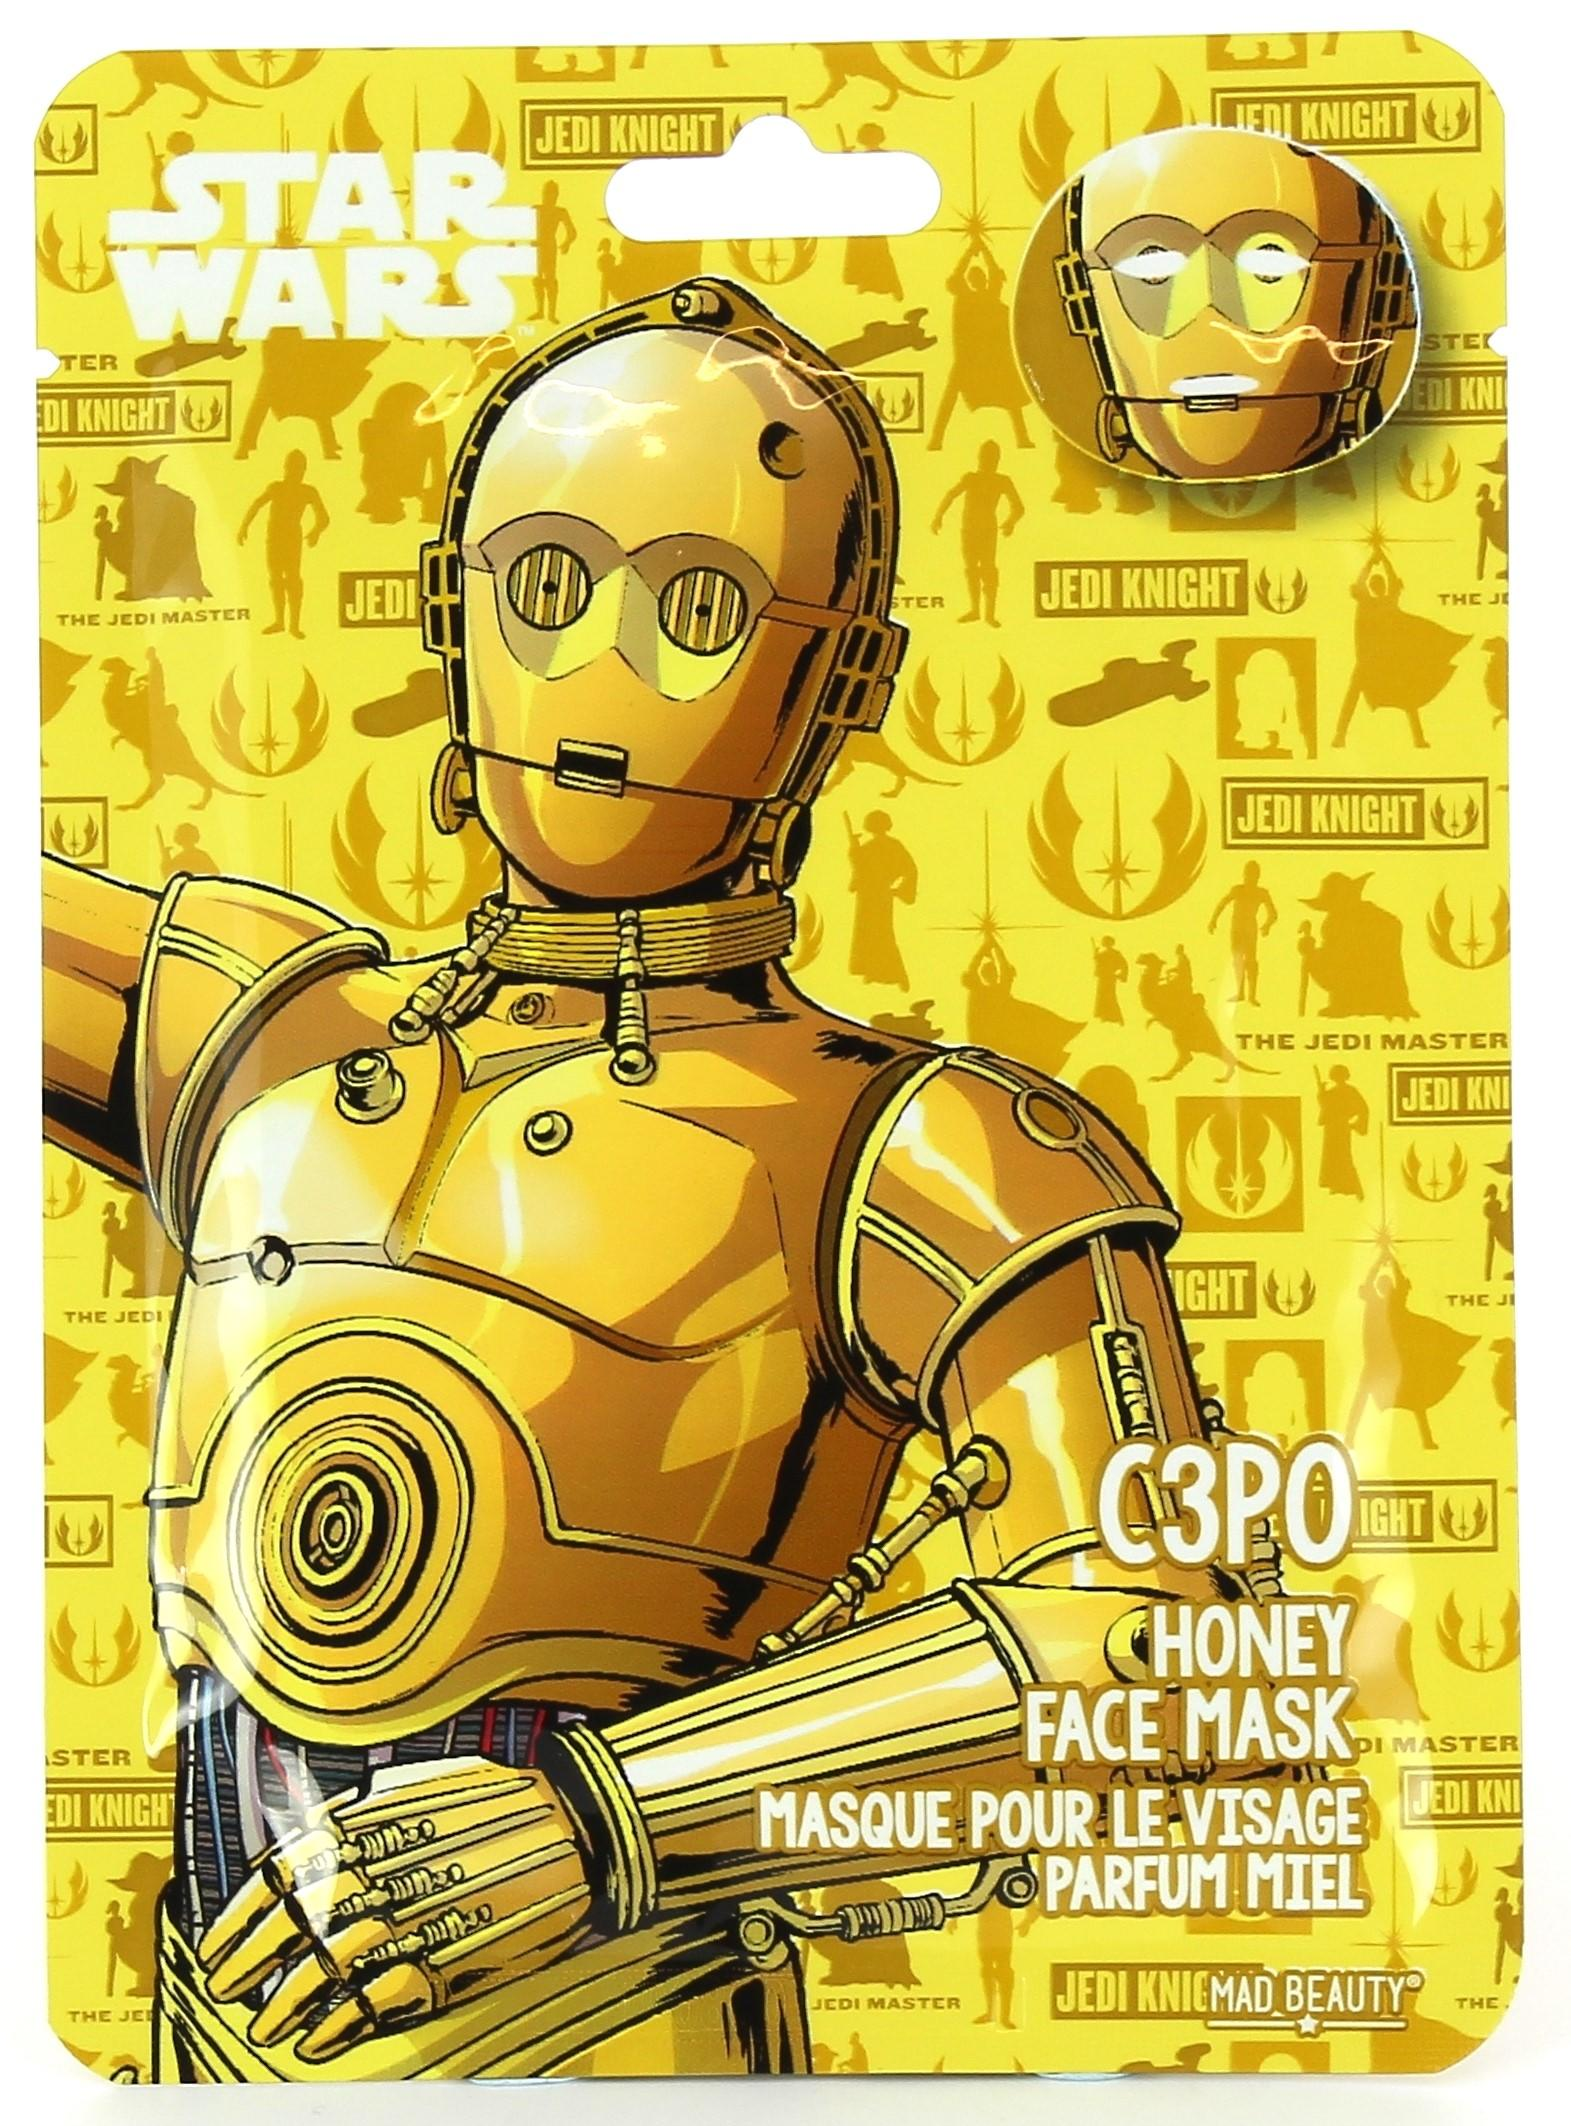 C3PO Honey Face Mask